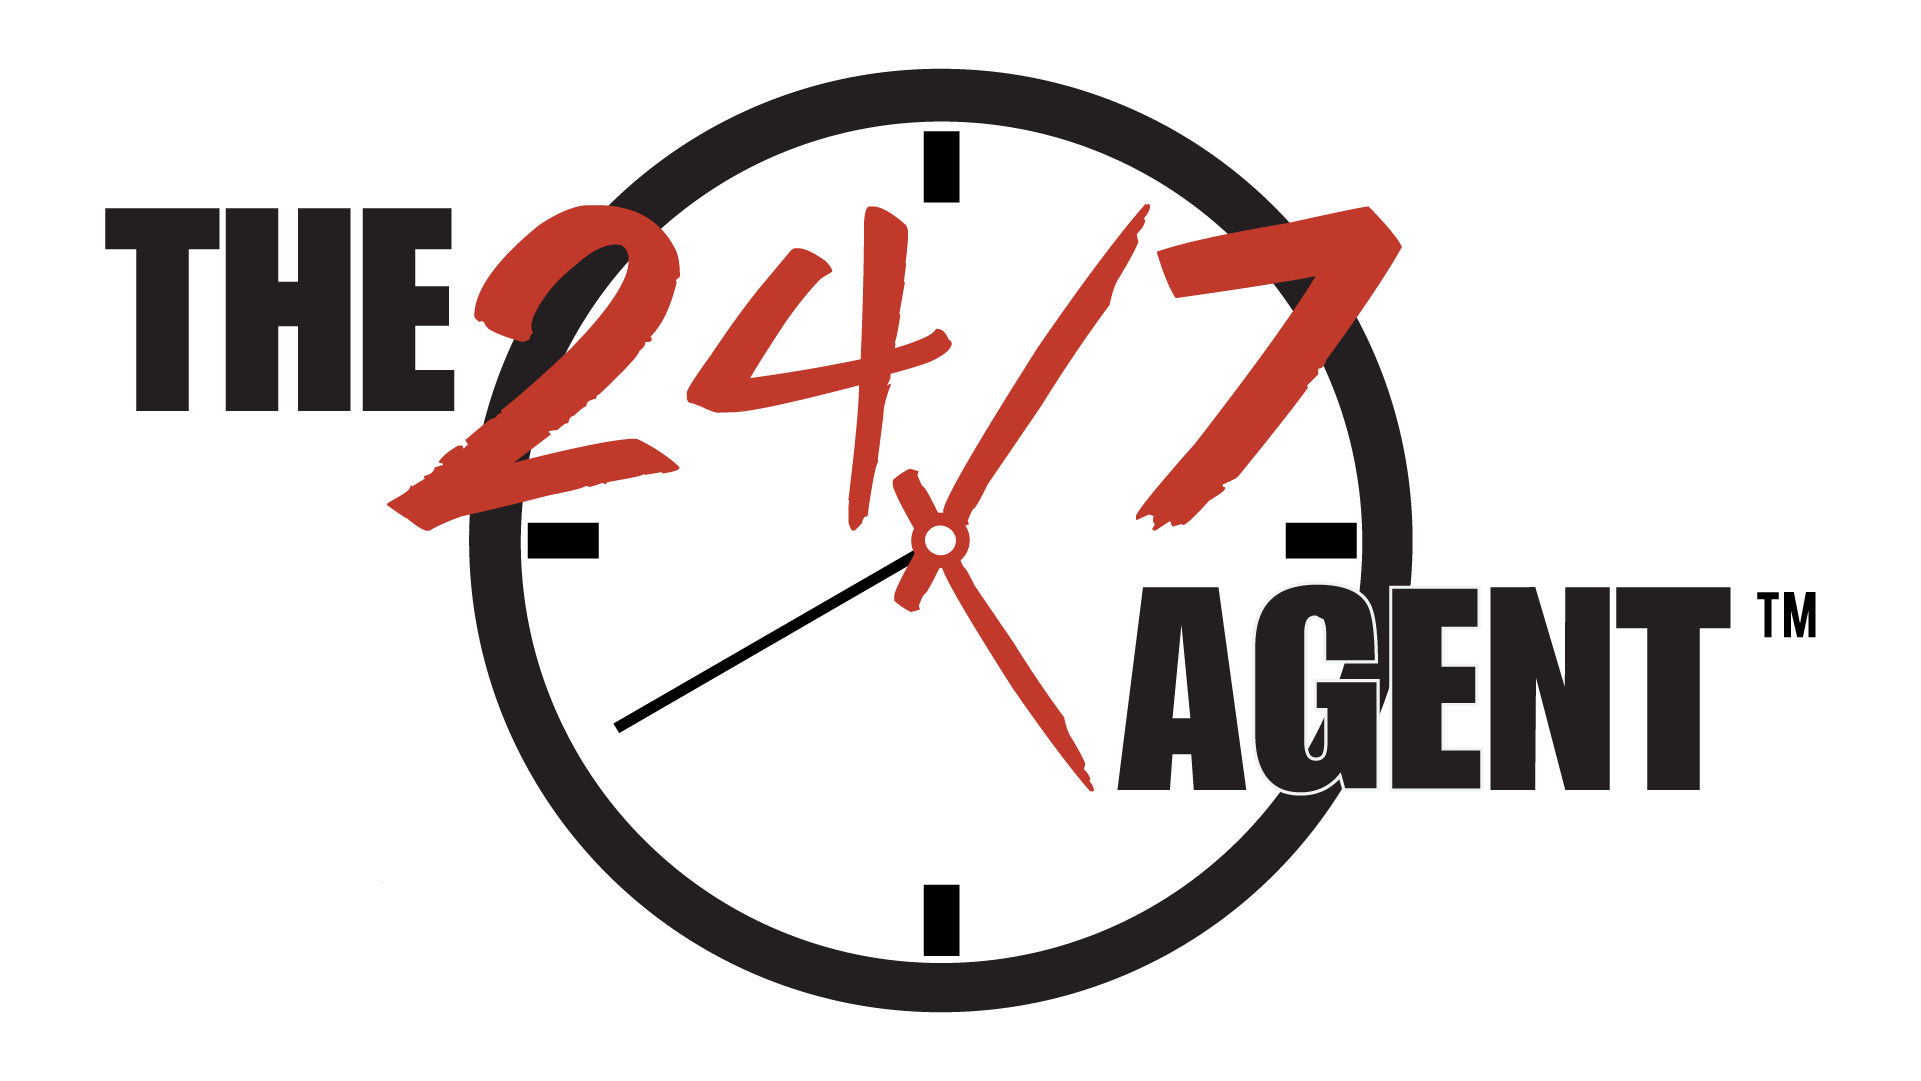 Team 24/7 | The 24/7 Agent, Stefan Doerrfeld, REALTOR, Cedar Rapids, Iowa